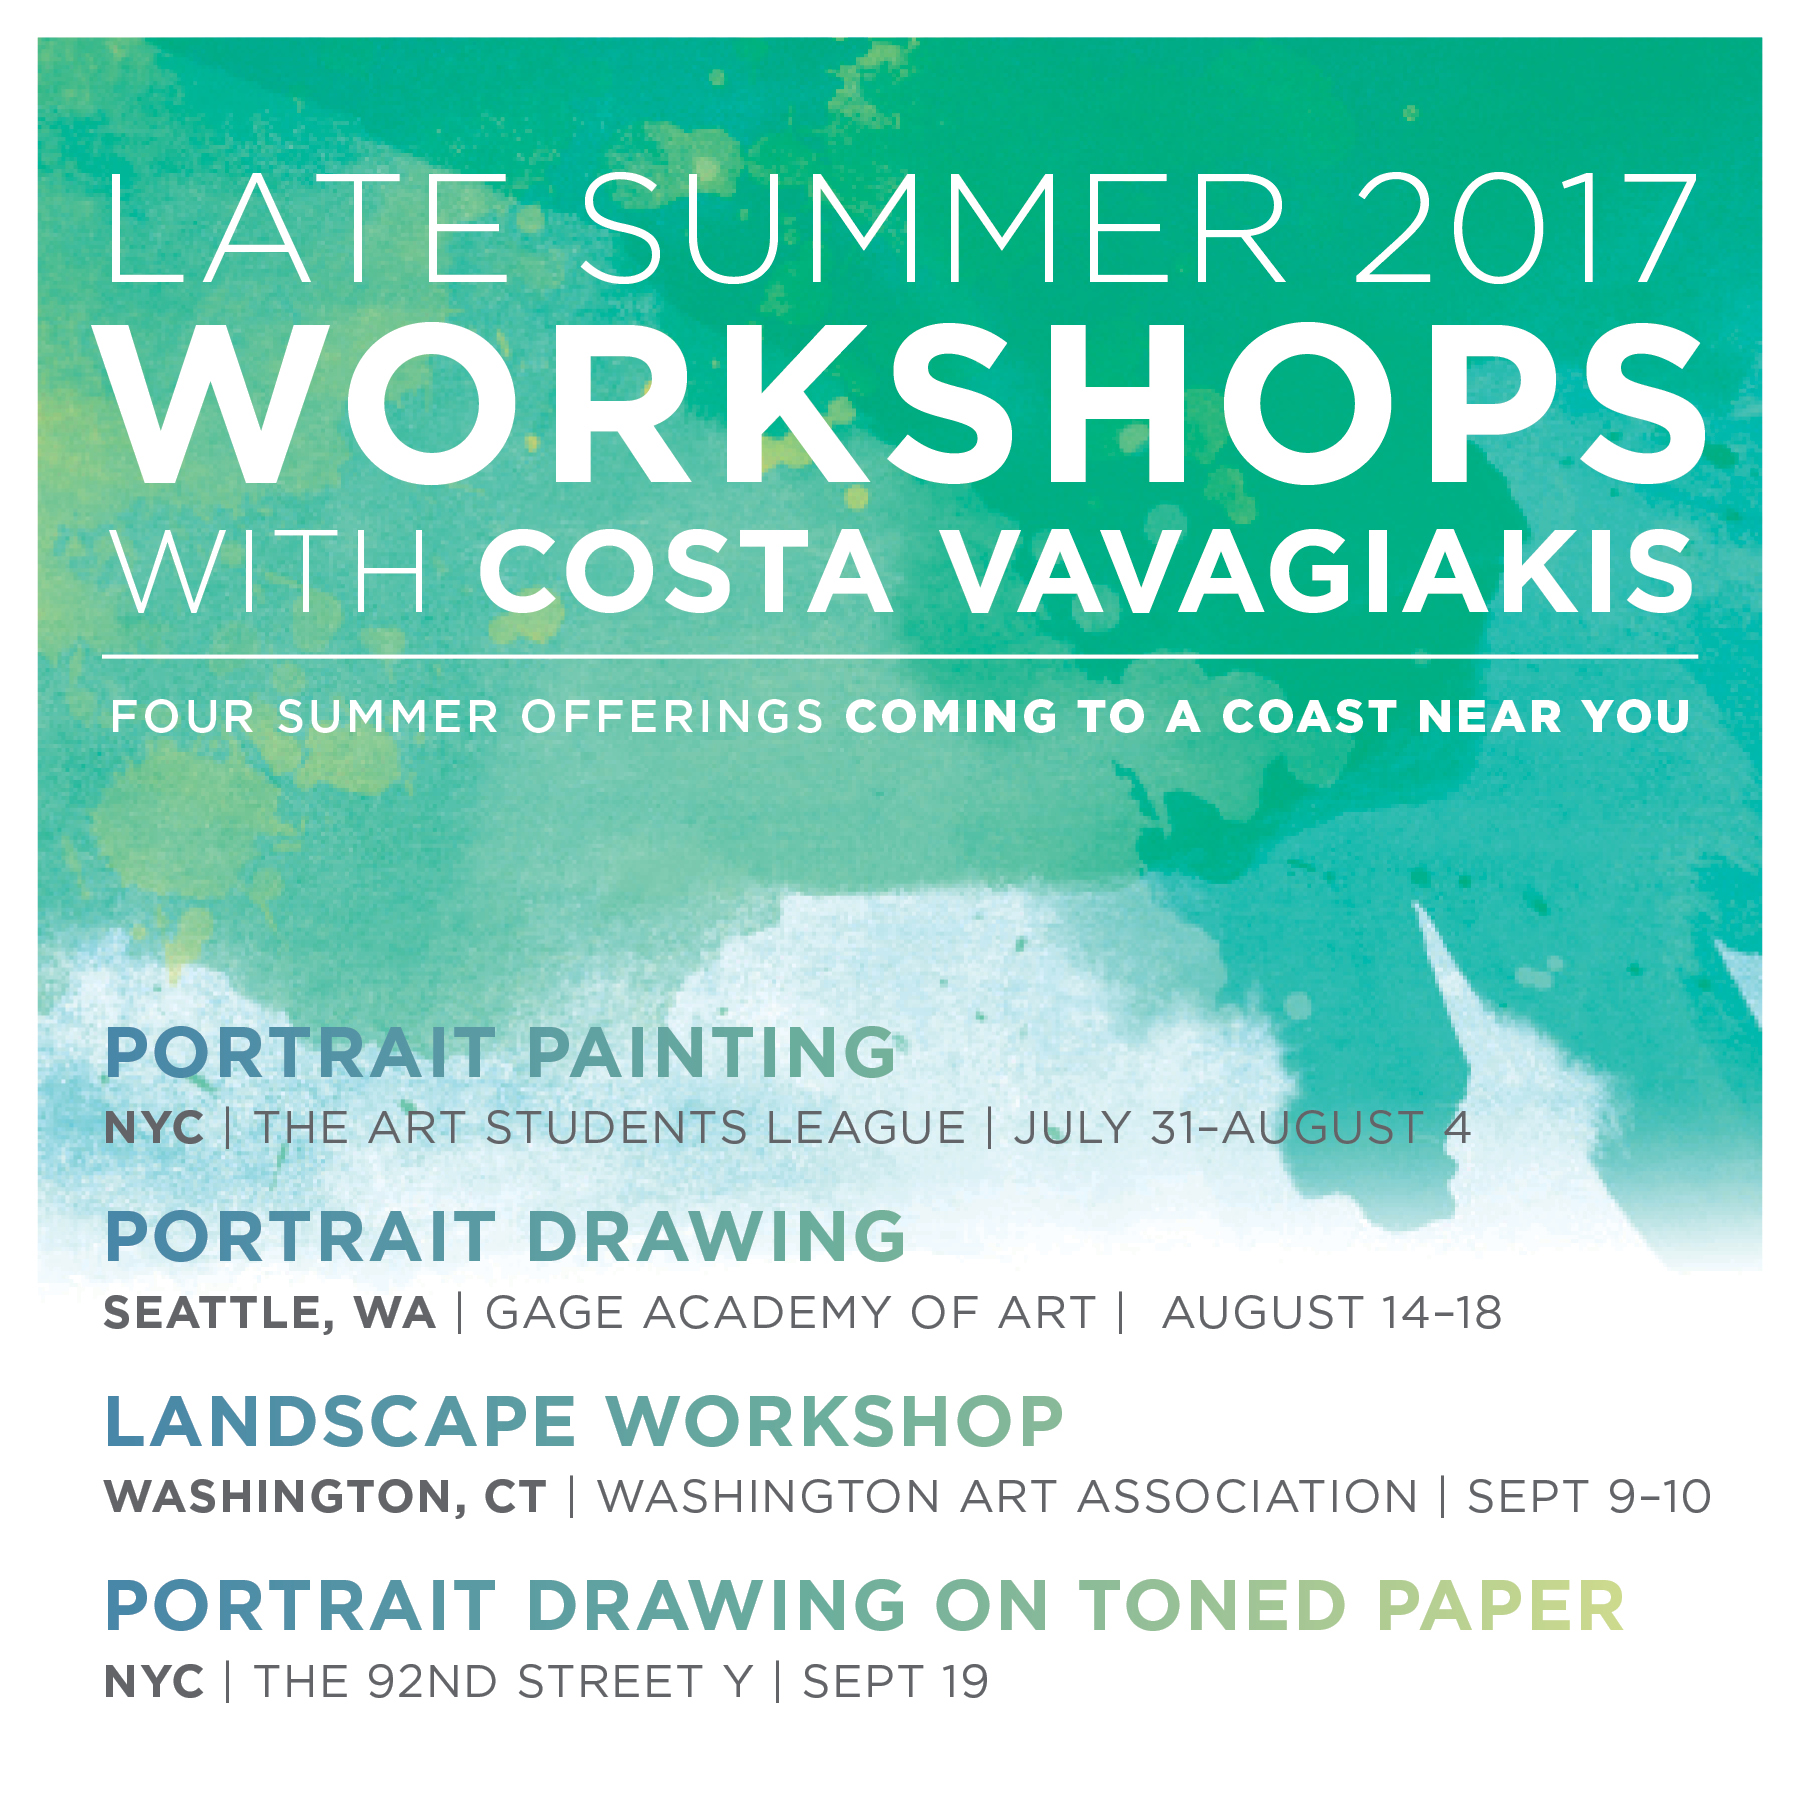 Late Summer 2017 Workshops